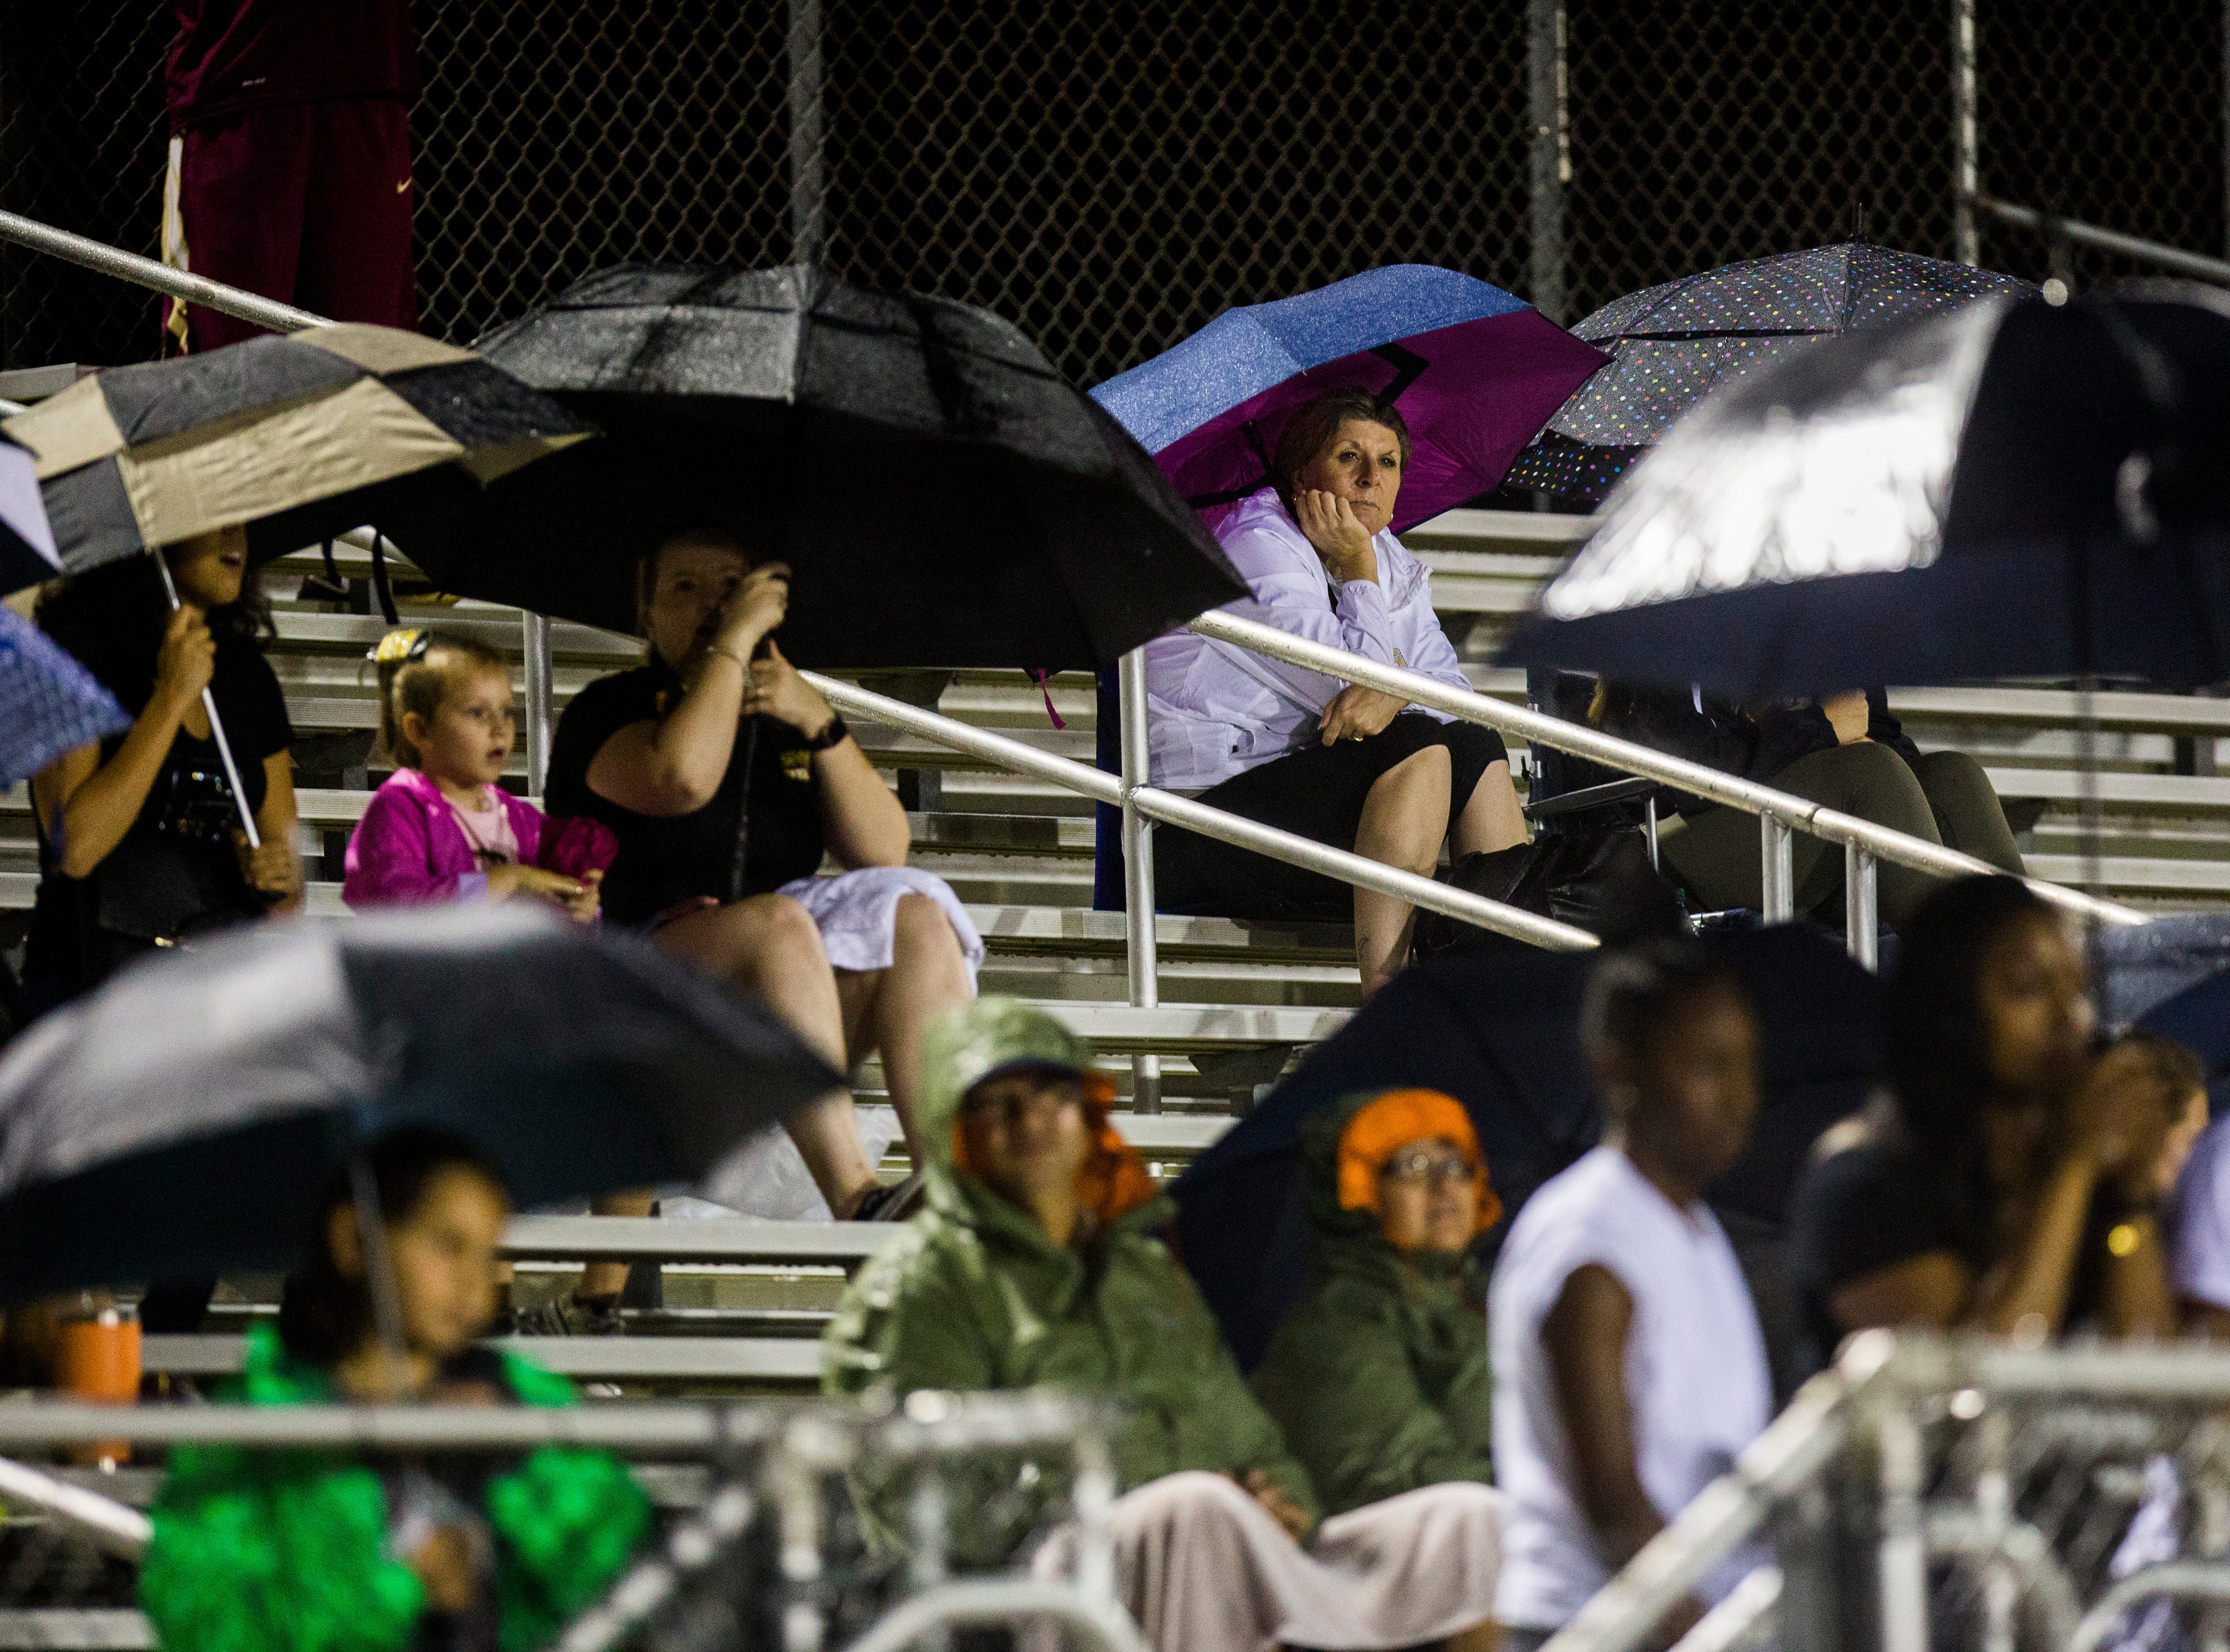 Spectators watch the game from the bleachers in the rain during the game against Immokalee at Golden Gate High School on Friday, Aug. 24, 2018.